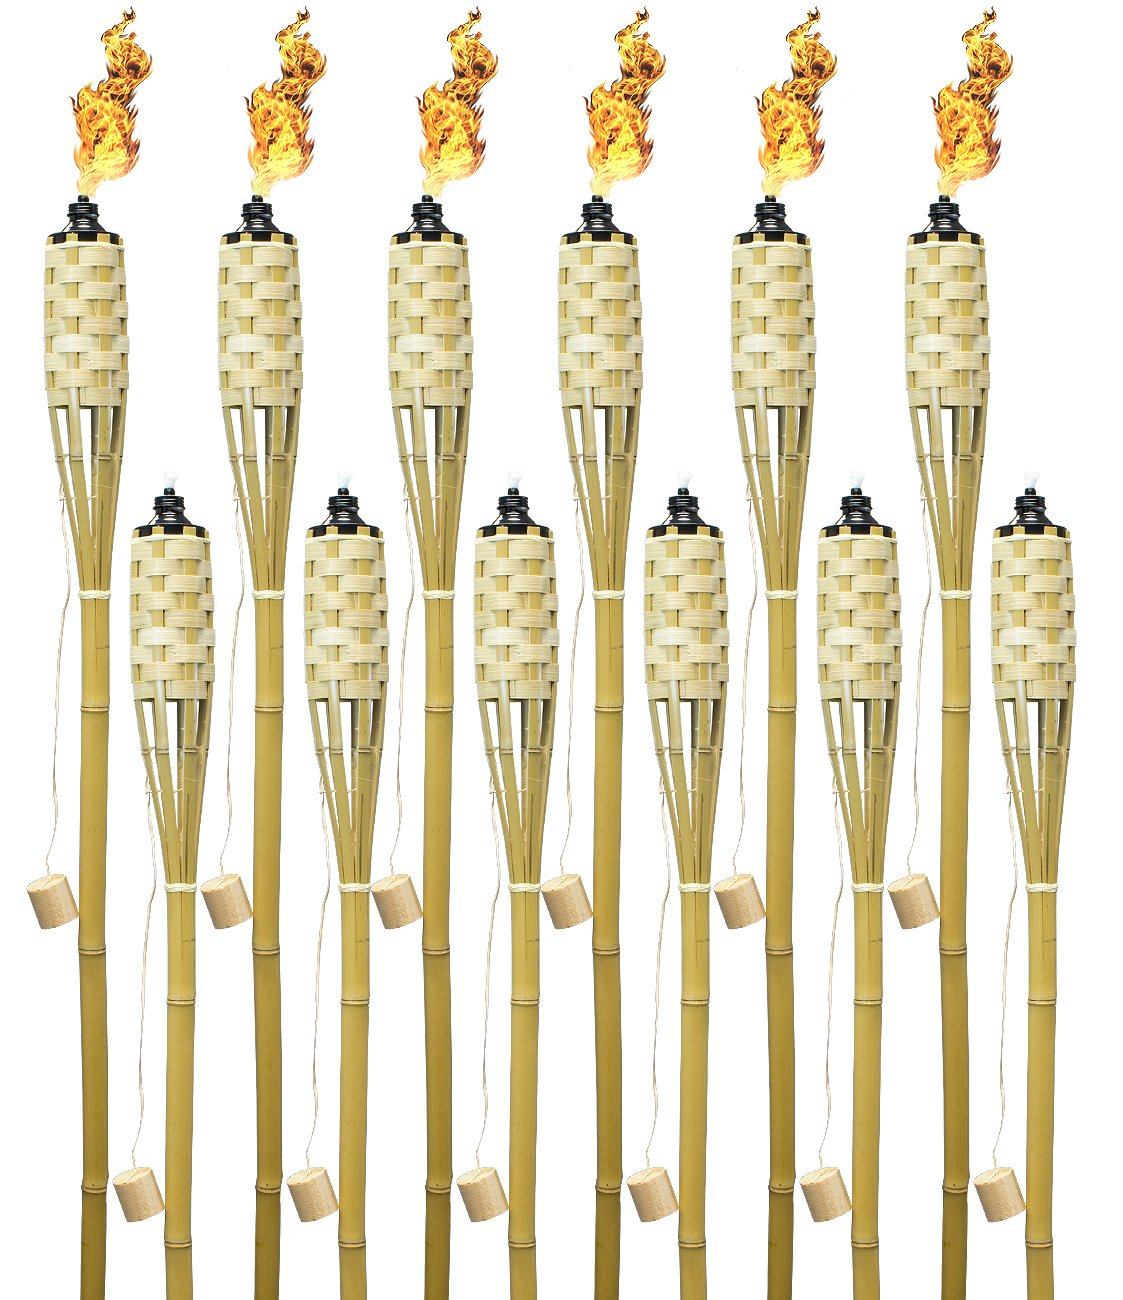 Matney Bamboo Torches – Includes Metal Oil Canisters with Covers to Protect from Rain – Great for Outdoor Decorating, Luau, Tiki Parties, Extra Long 60 Inches (Bamboo, 12 Pack)